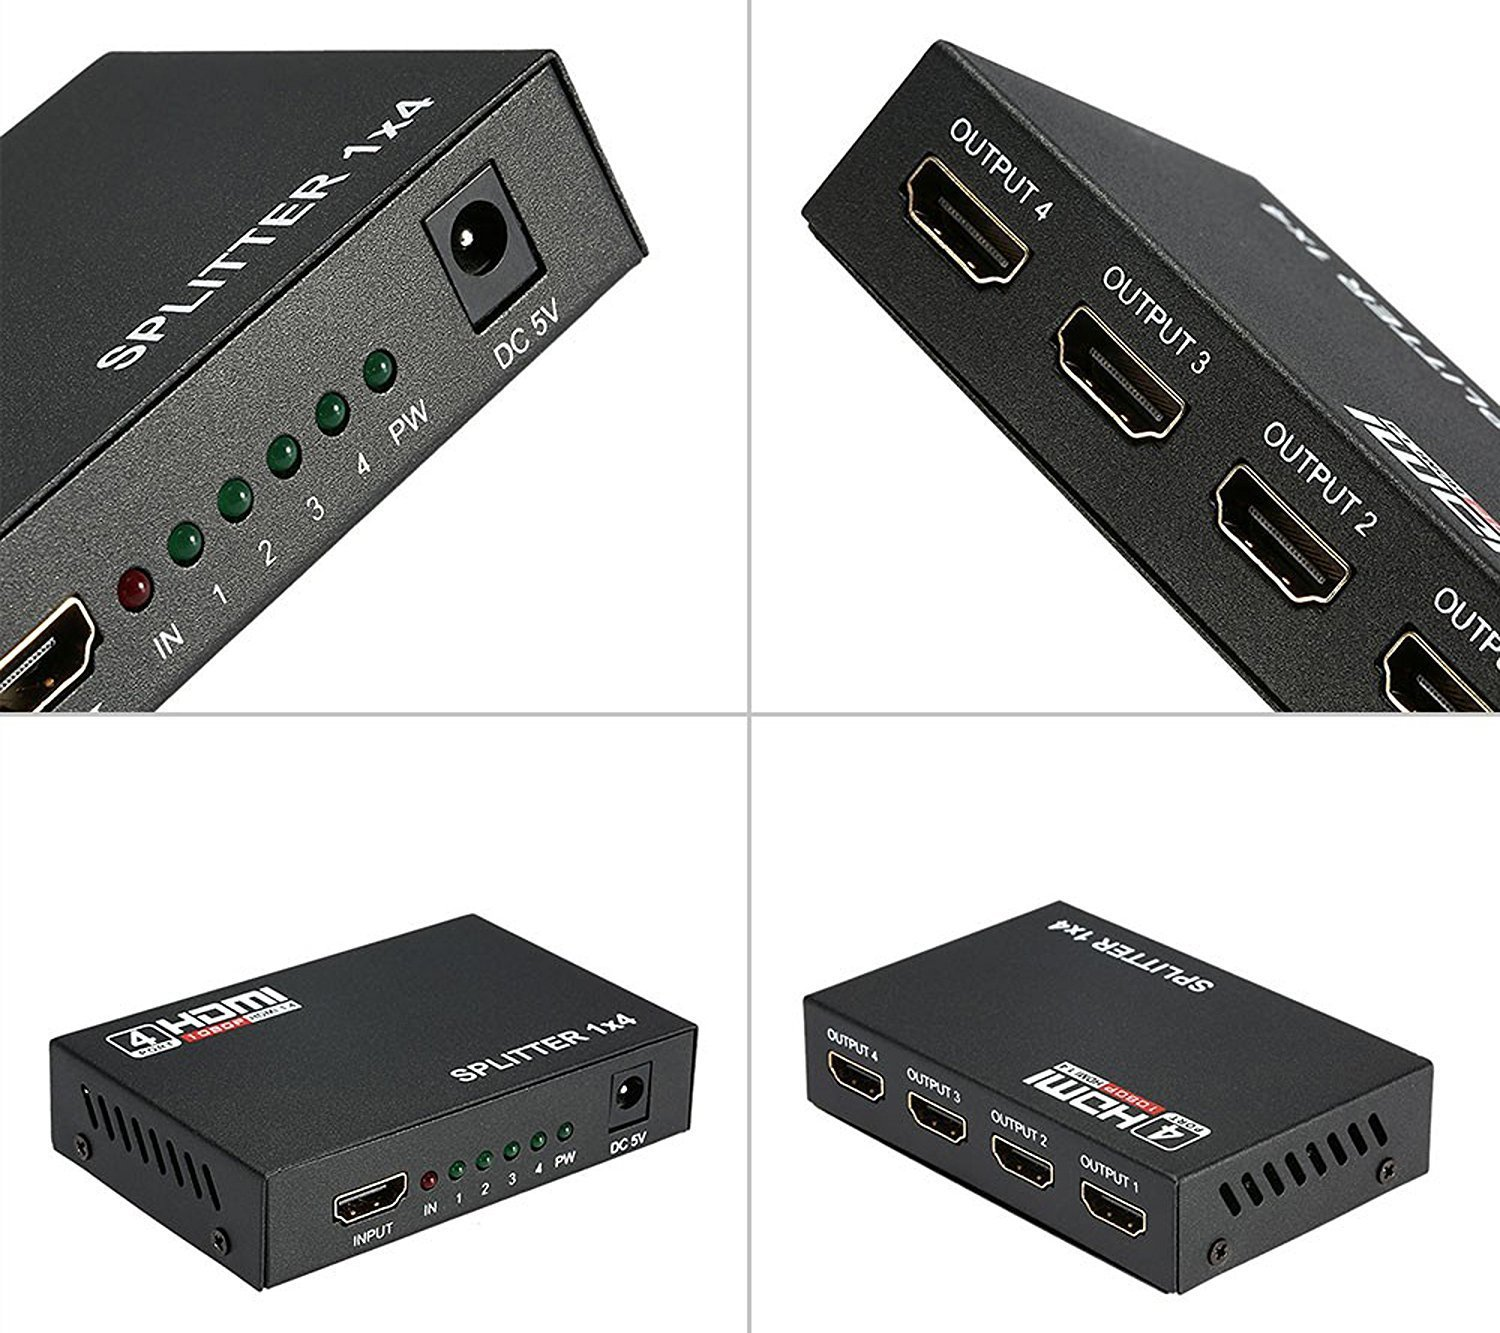 DAHSHA 1 x 4 HDMI Splitter 1 HDMI input to 4 HDMI output For